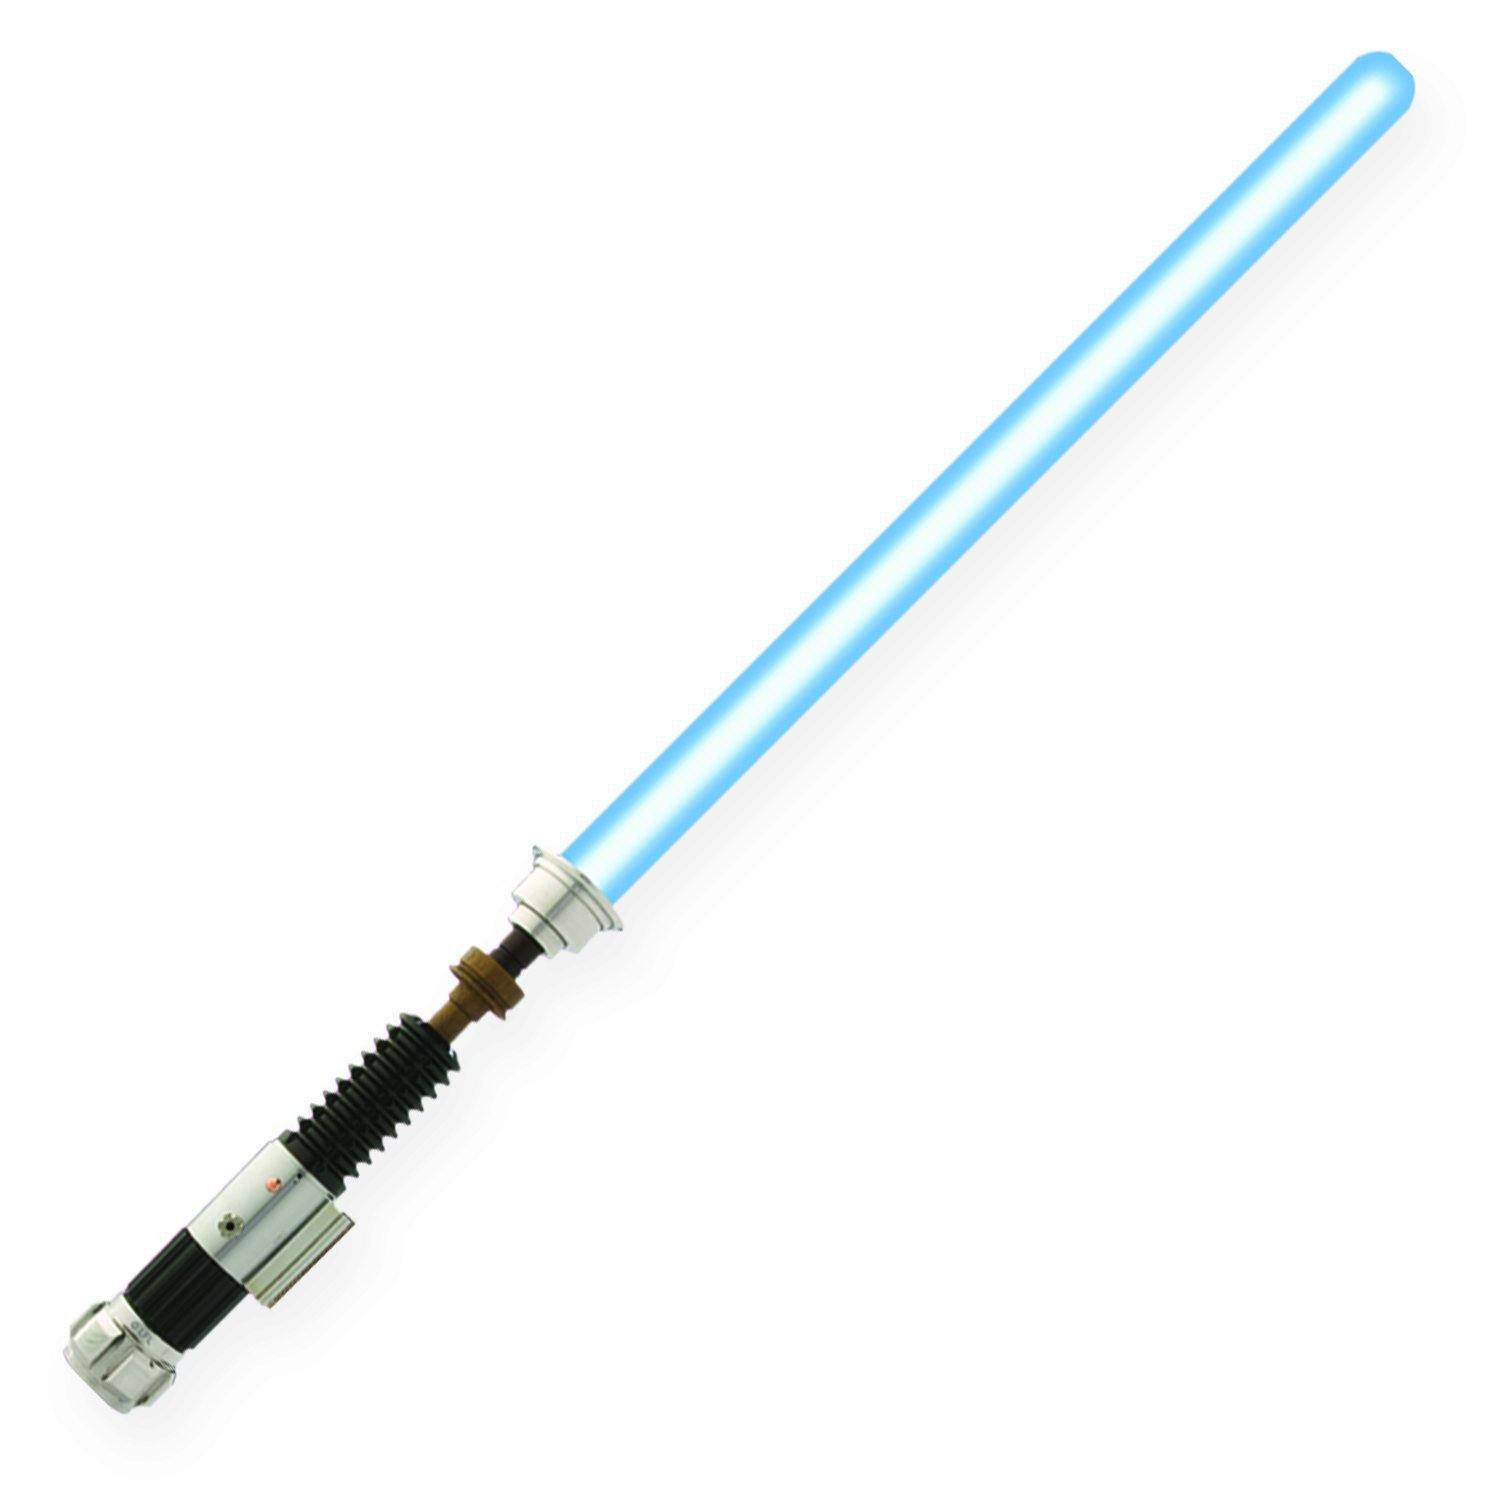 Star Wars ObiWan Kenobi Lightsaber Wiper Blade Accessory